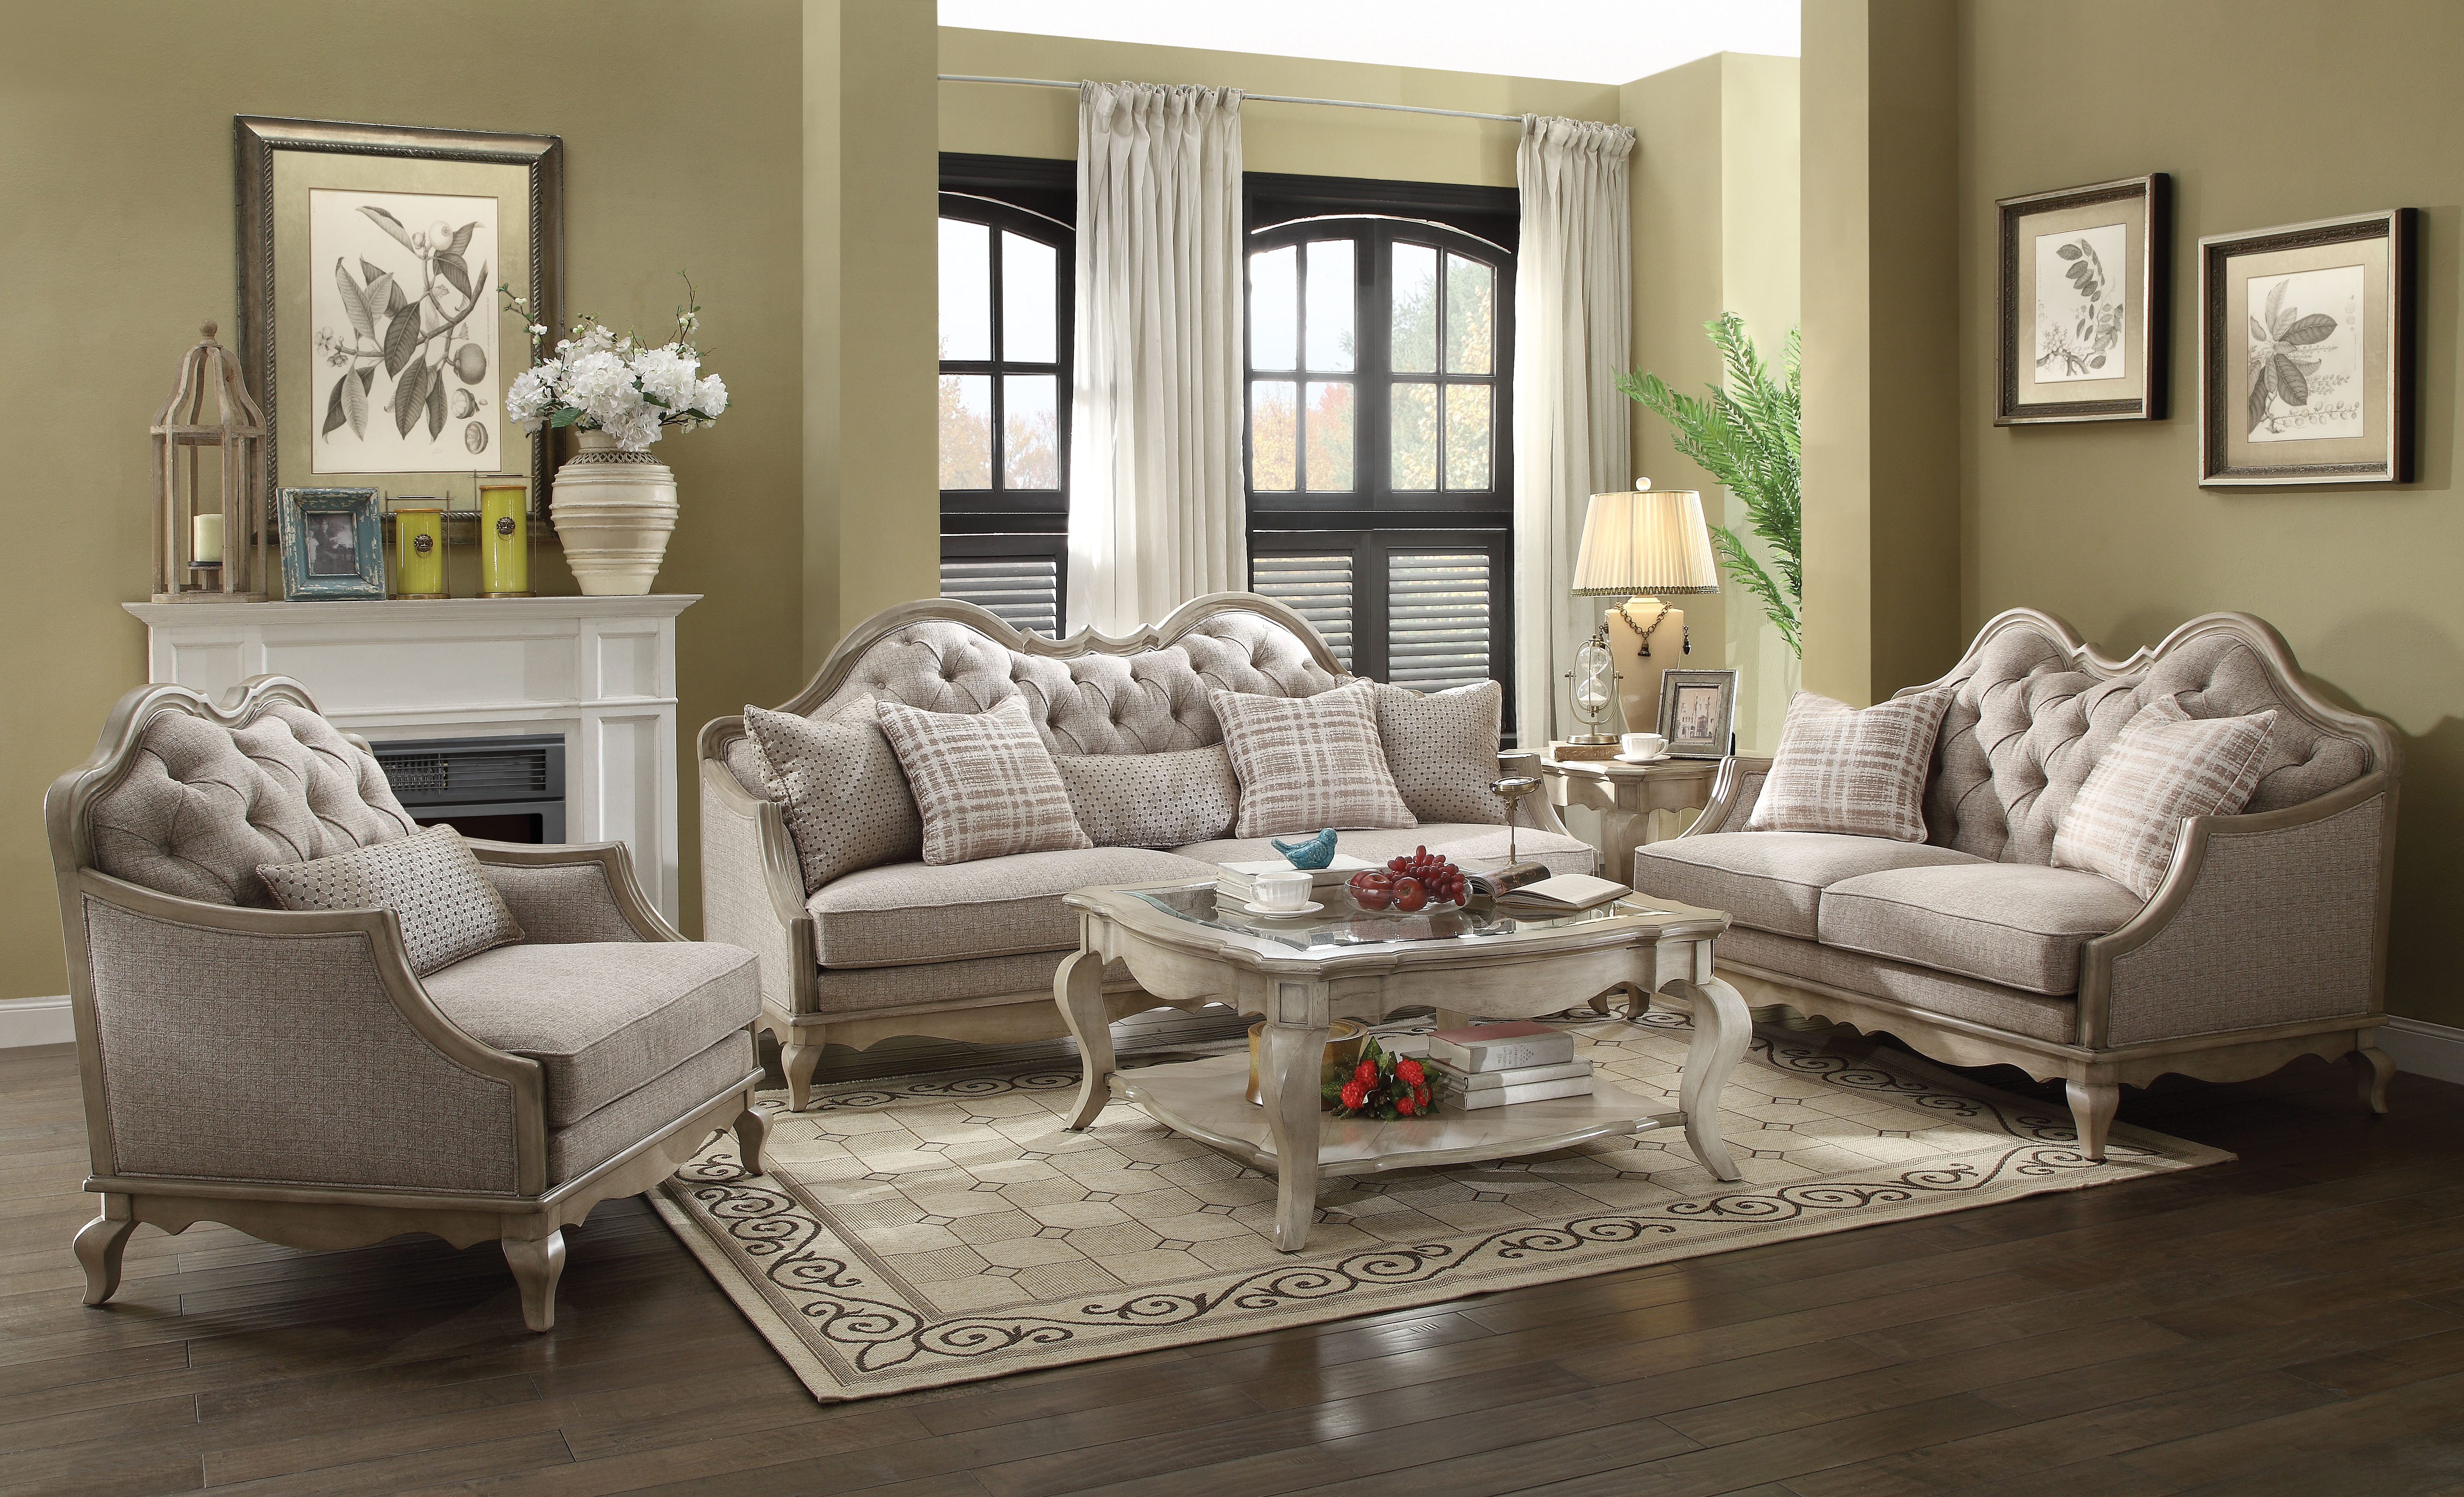 King Of Chairs Chelmsford Antique Taupe & Beige Fabric Chair W/1 Pillow Regarding Newest Chelmsford 3 Piece Dining Sets (Gallery 13 of 25)